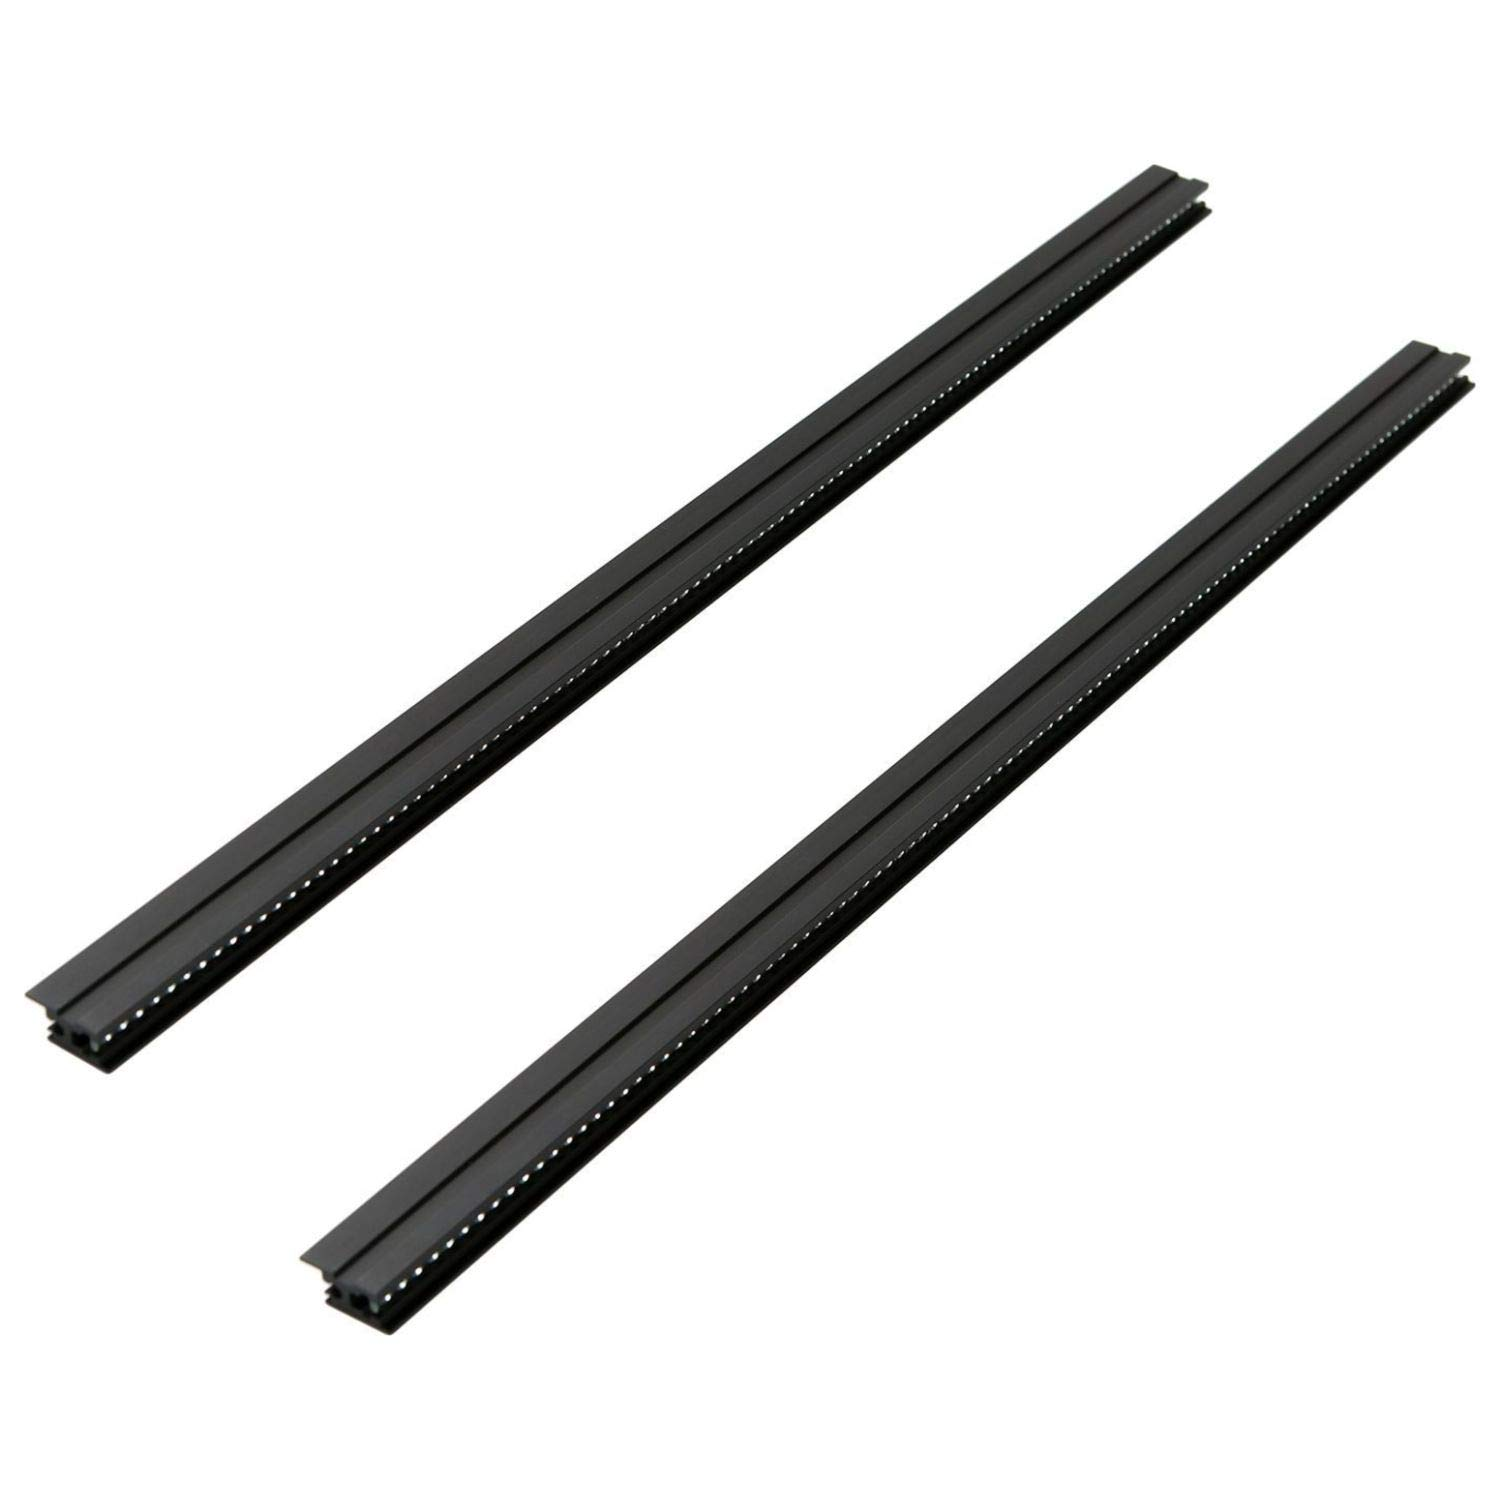 Tiptop Audio Z-Rails 104HP Pair - Black by Tiptop Audio